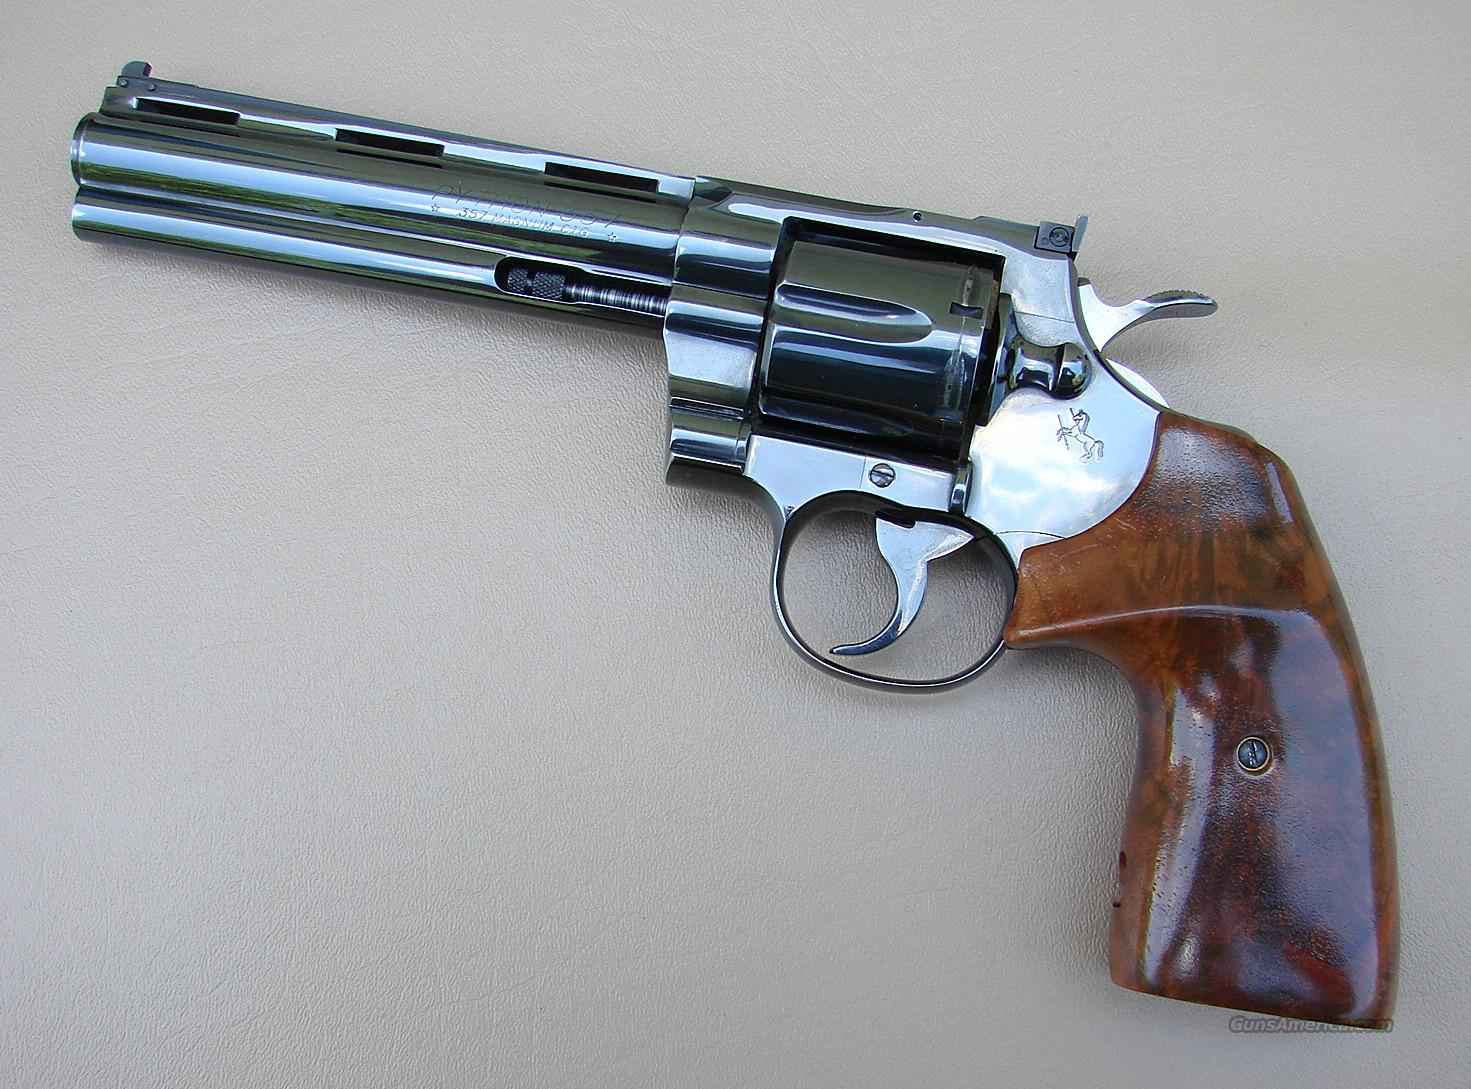 Colt Python 357 Revolver with 6 Inch Barrel  Guns > Pistols > Colt Double Action Revolvers- Modern